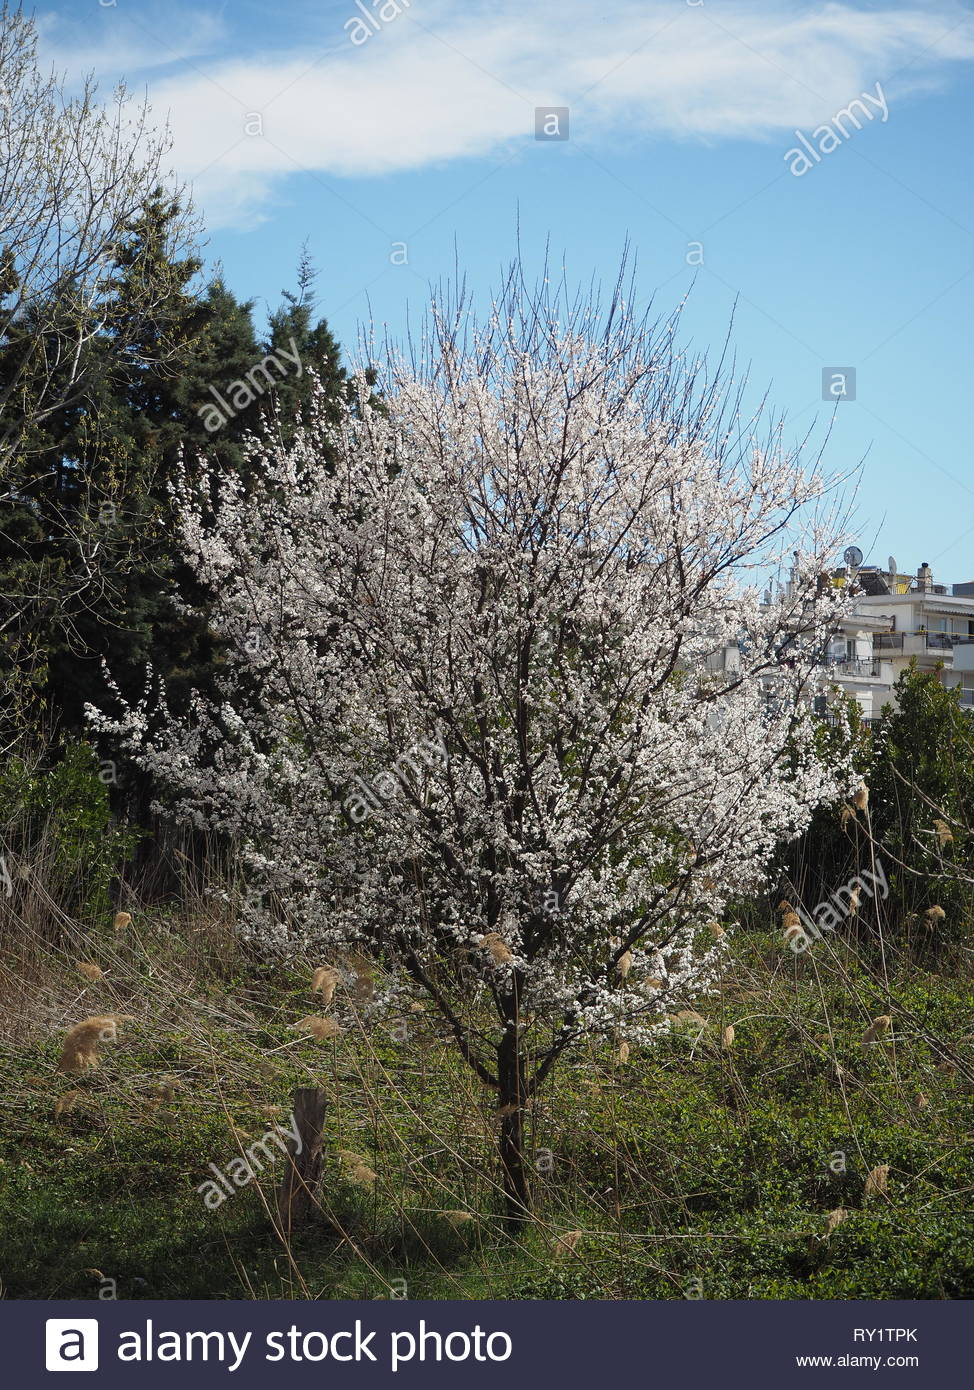 A view of a blooming almond tree with white flowers - Stock Image